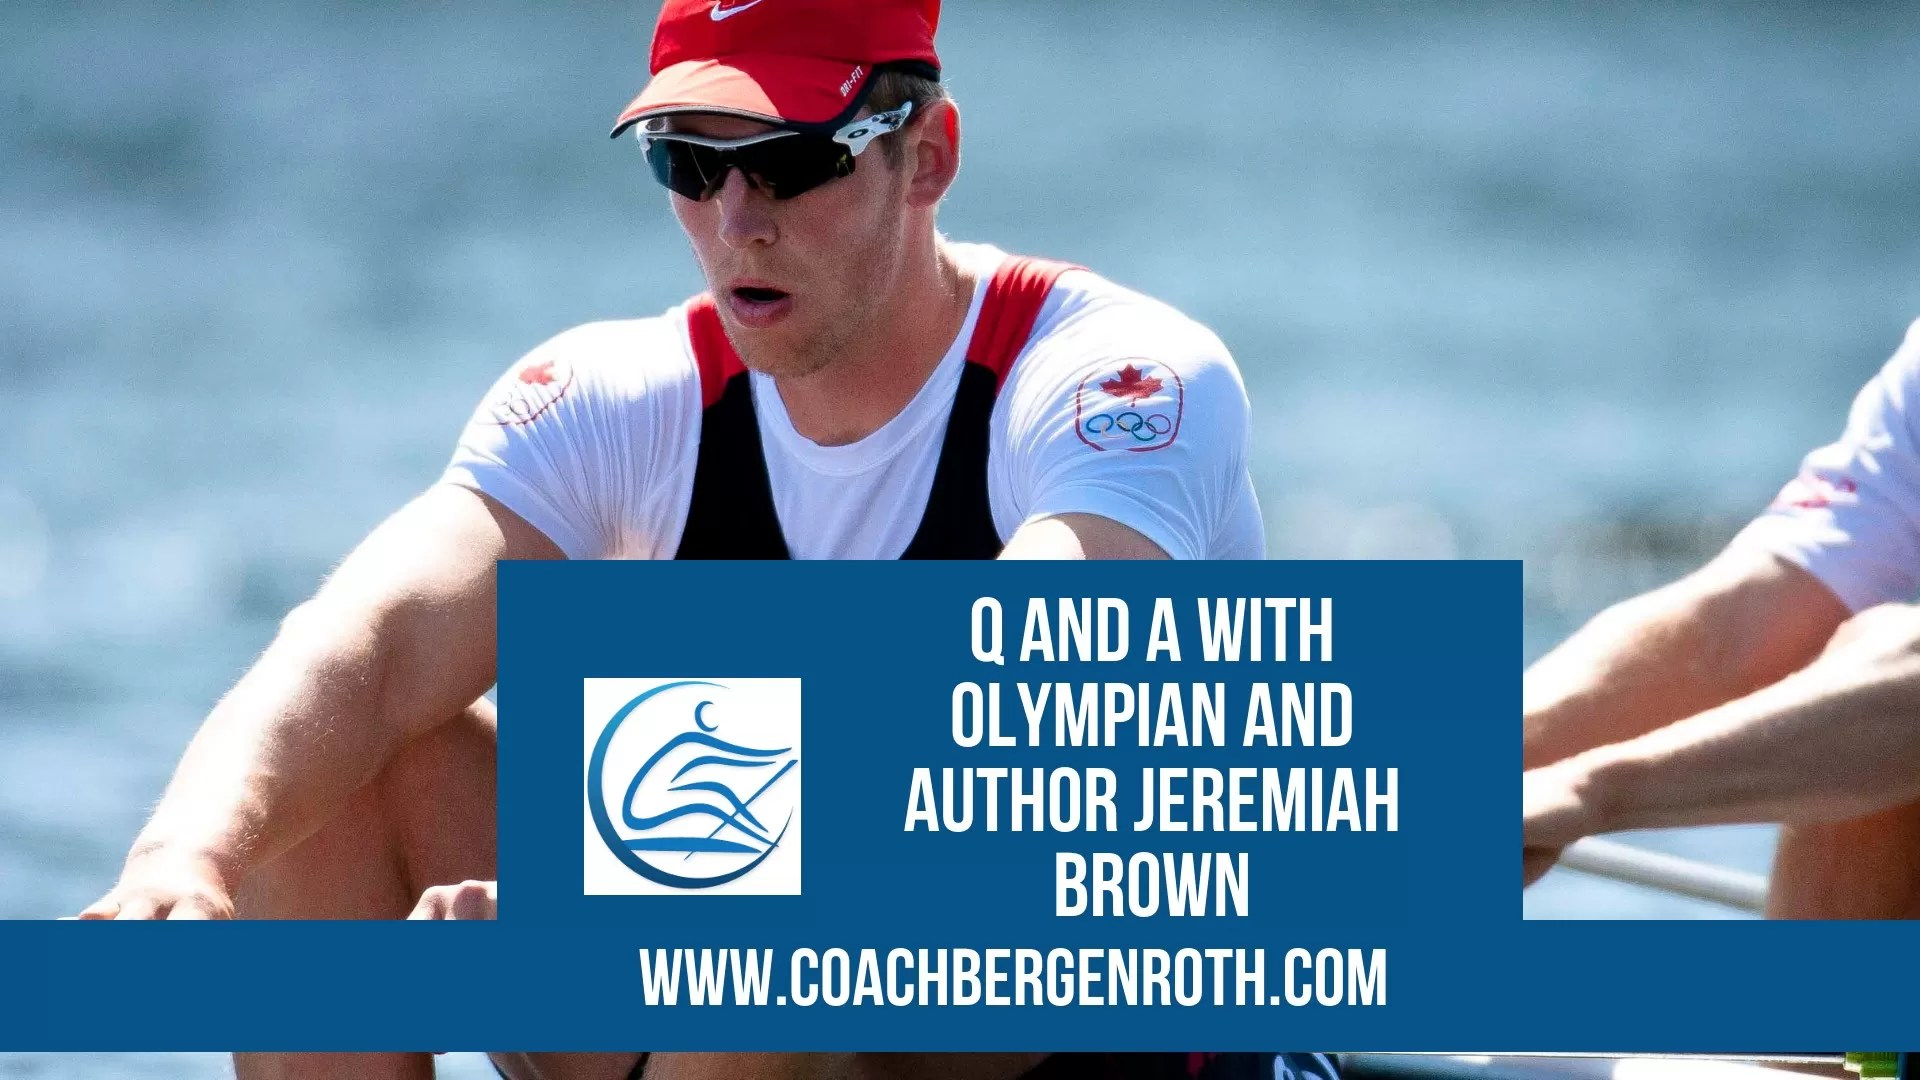 Q and A With Author and Olympian Jeremiah Brown